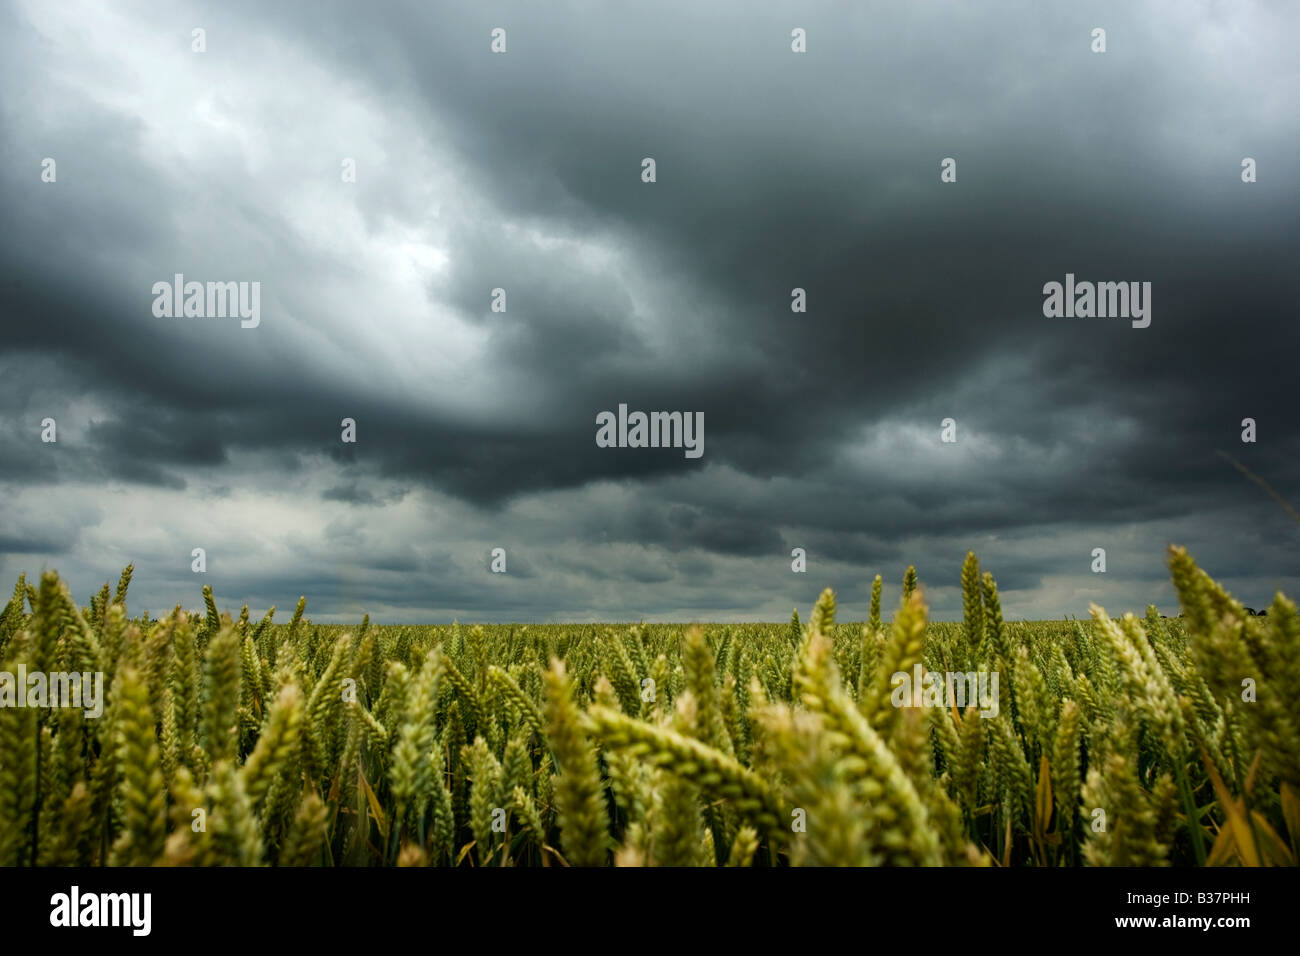 Dramatic stormy sky over a wheat field - Stock Image